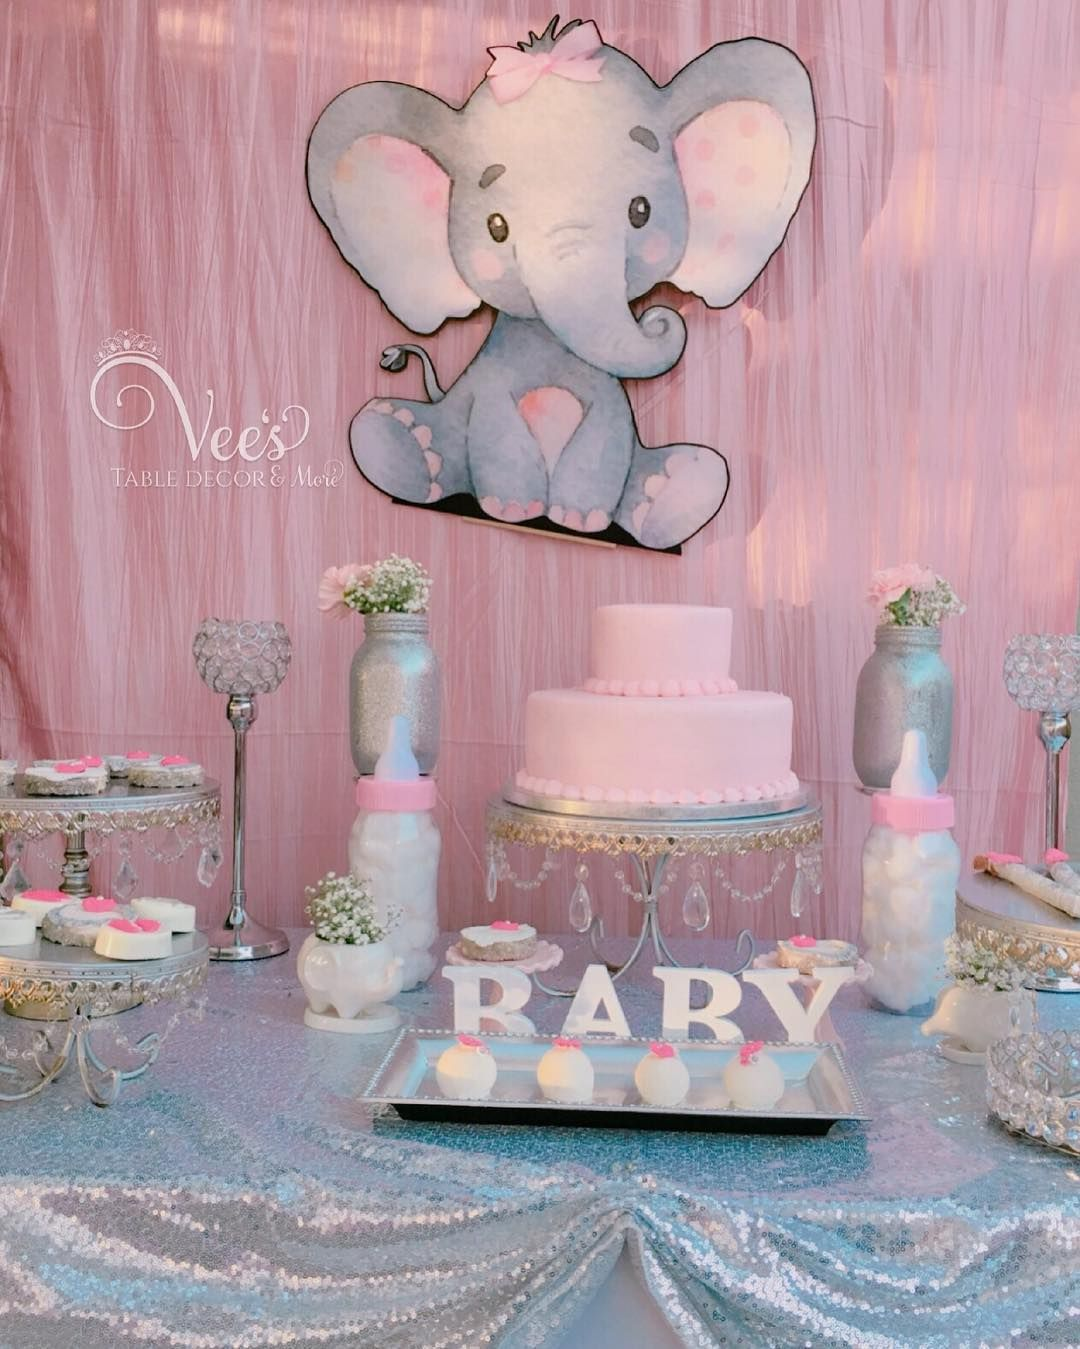 Elephant Baby Shower Table Decor Setup By Veestabledecor Desserts By Kj9 Elephant Baby Shower Theme Baby Shower Dessert Table Girl Baby Shower Party Themes